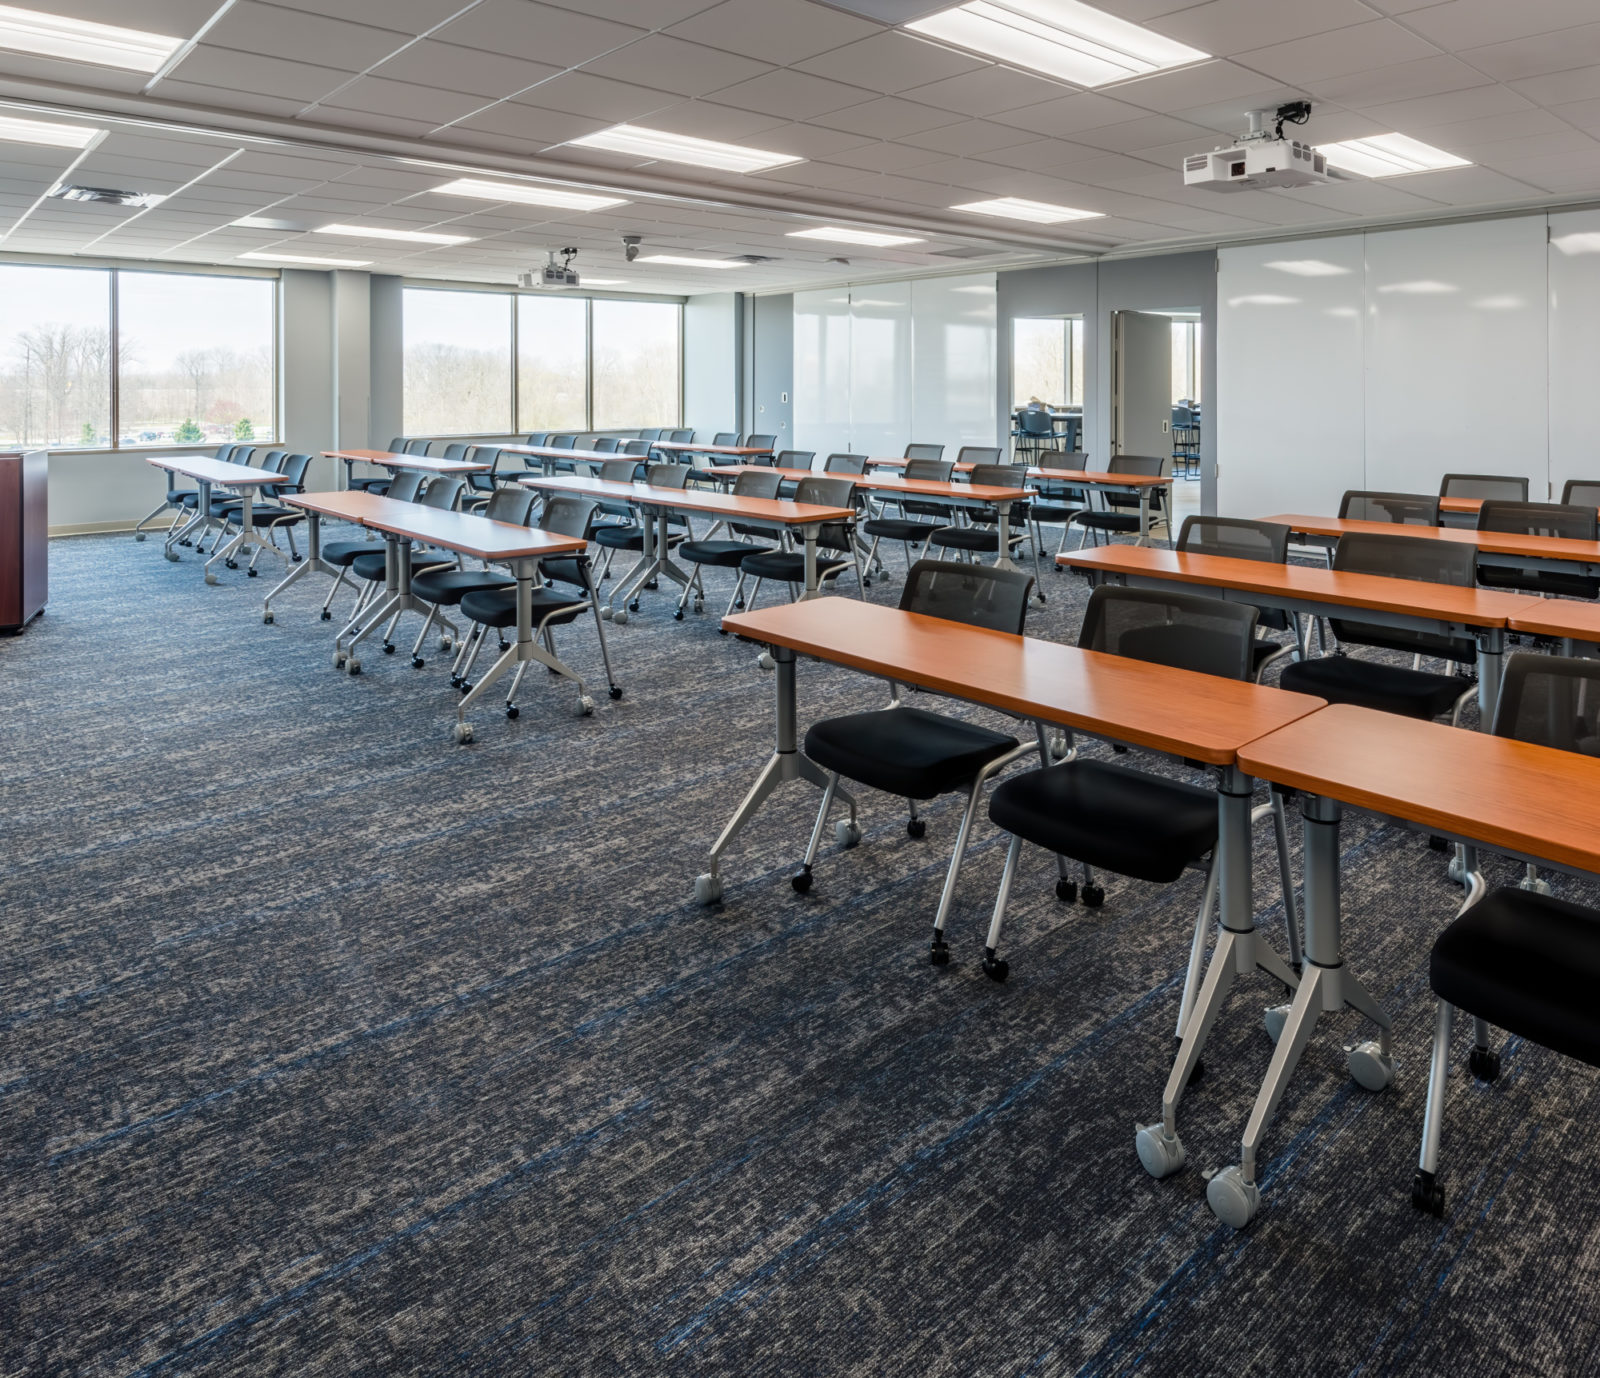 Orbis education room with desks and chairs